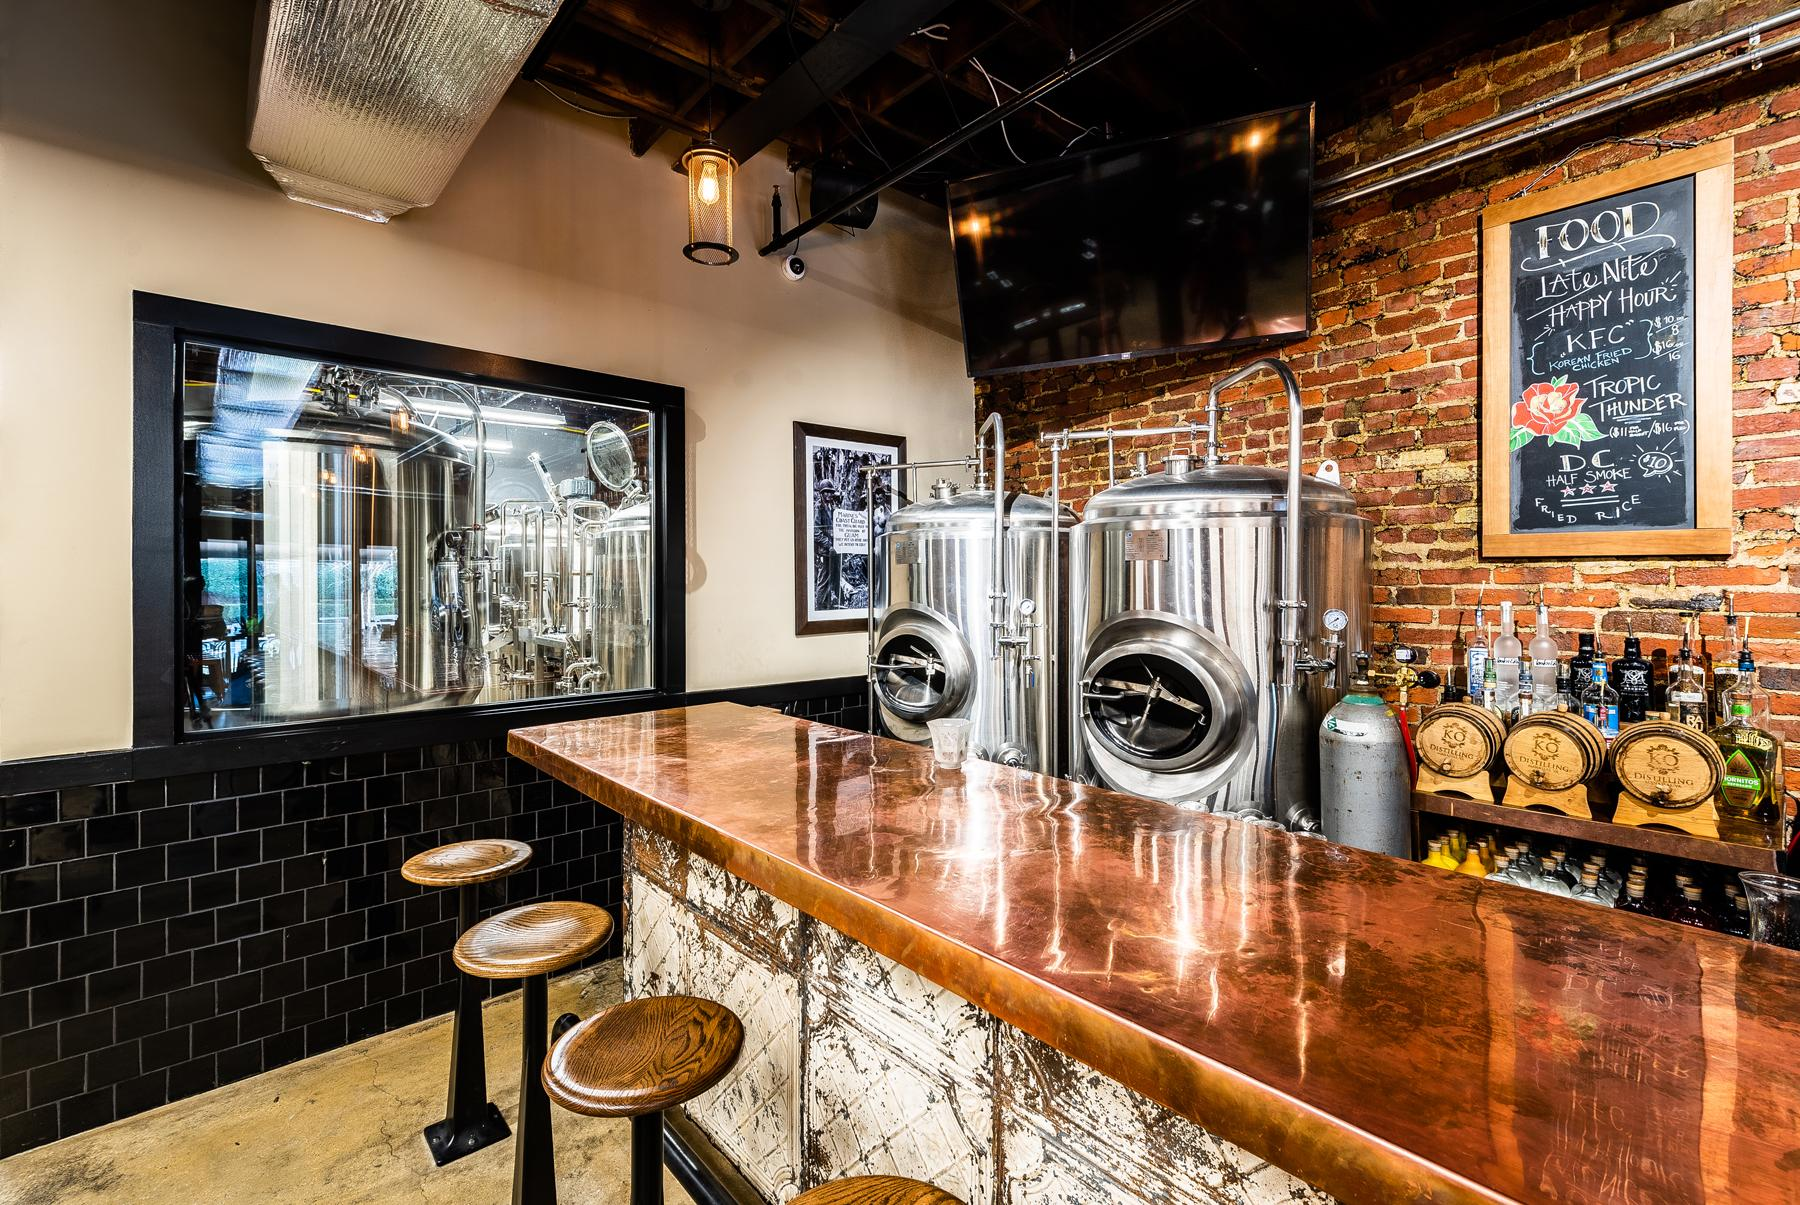 The brewing system at Valor Brewpub. (Image: Courtesy Valor Brewpub)